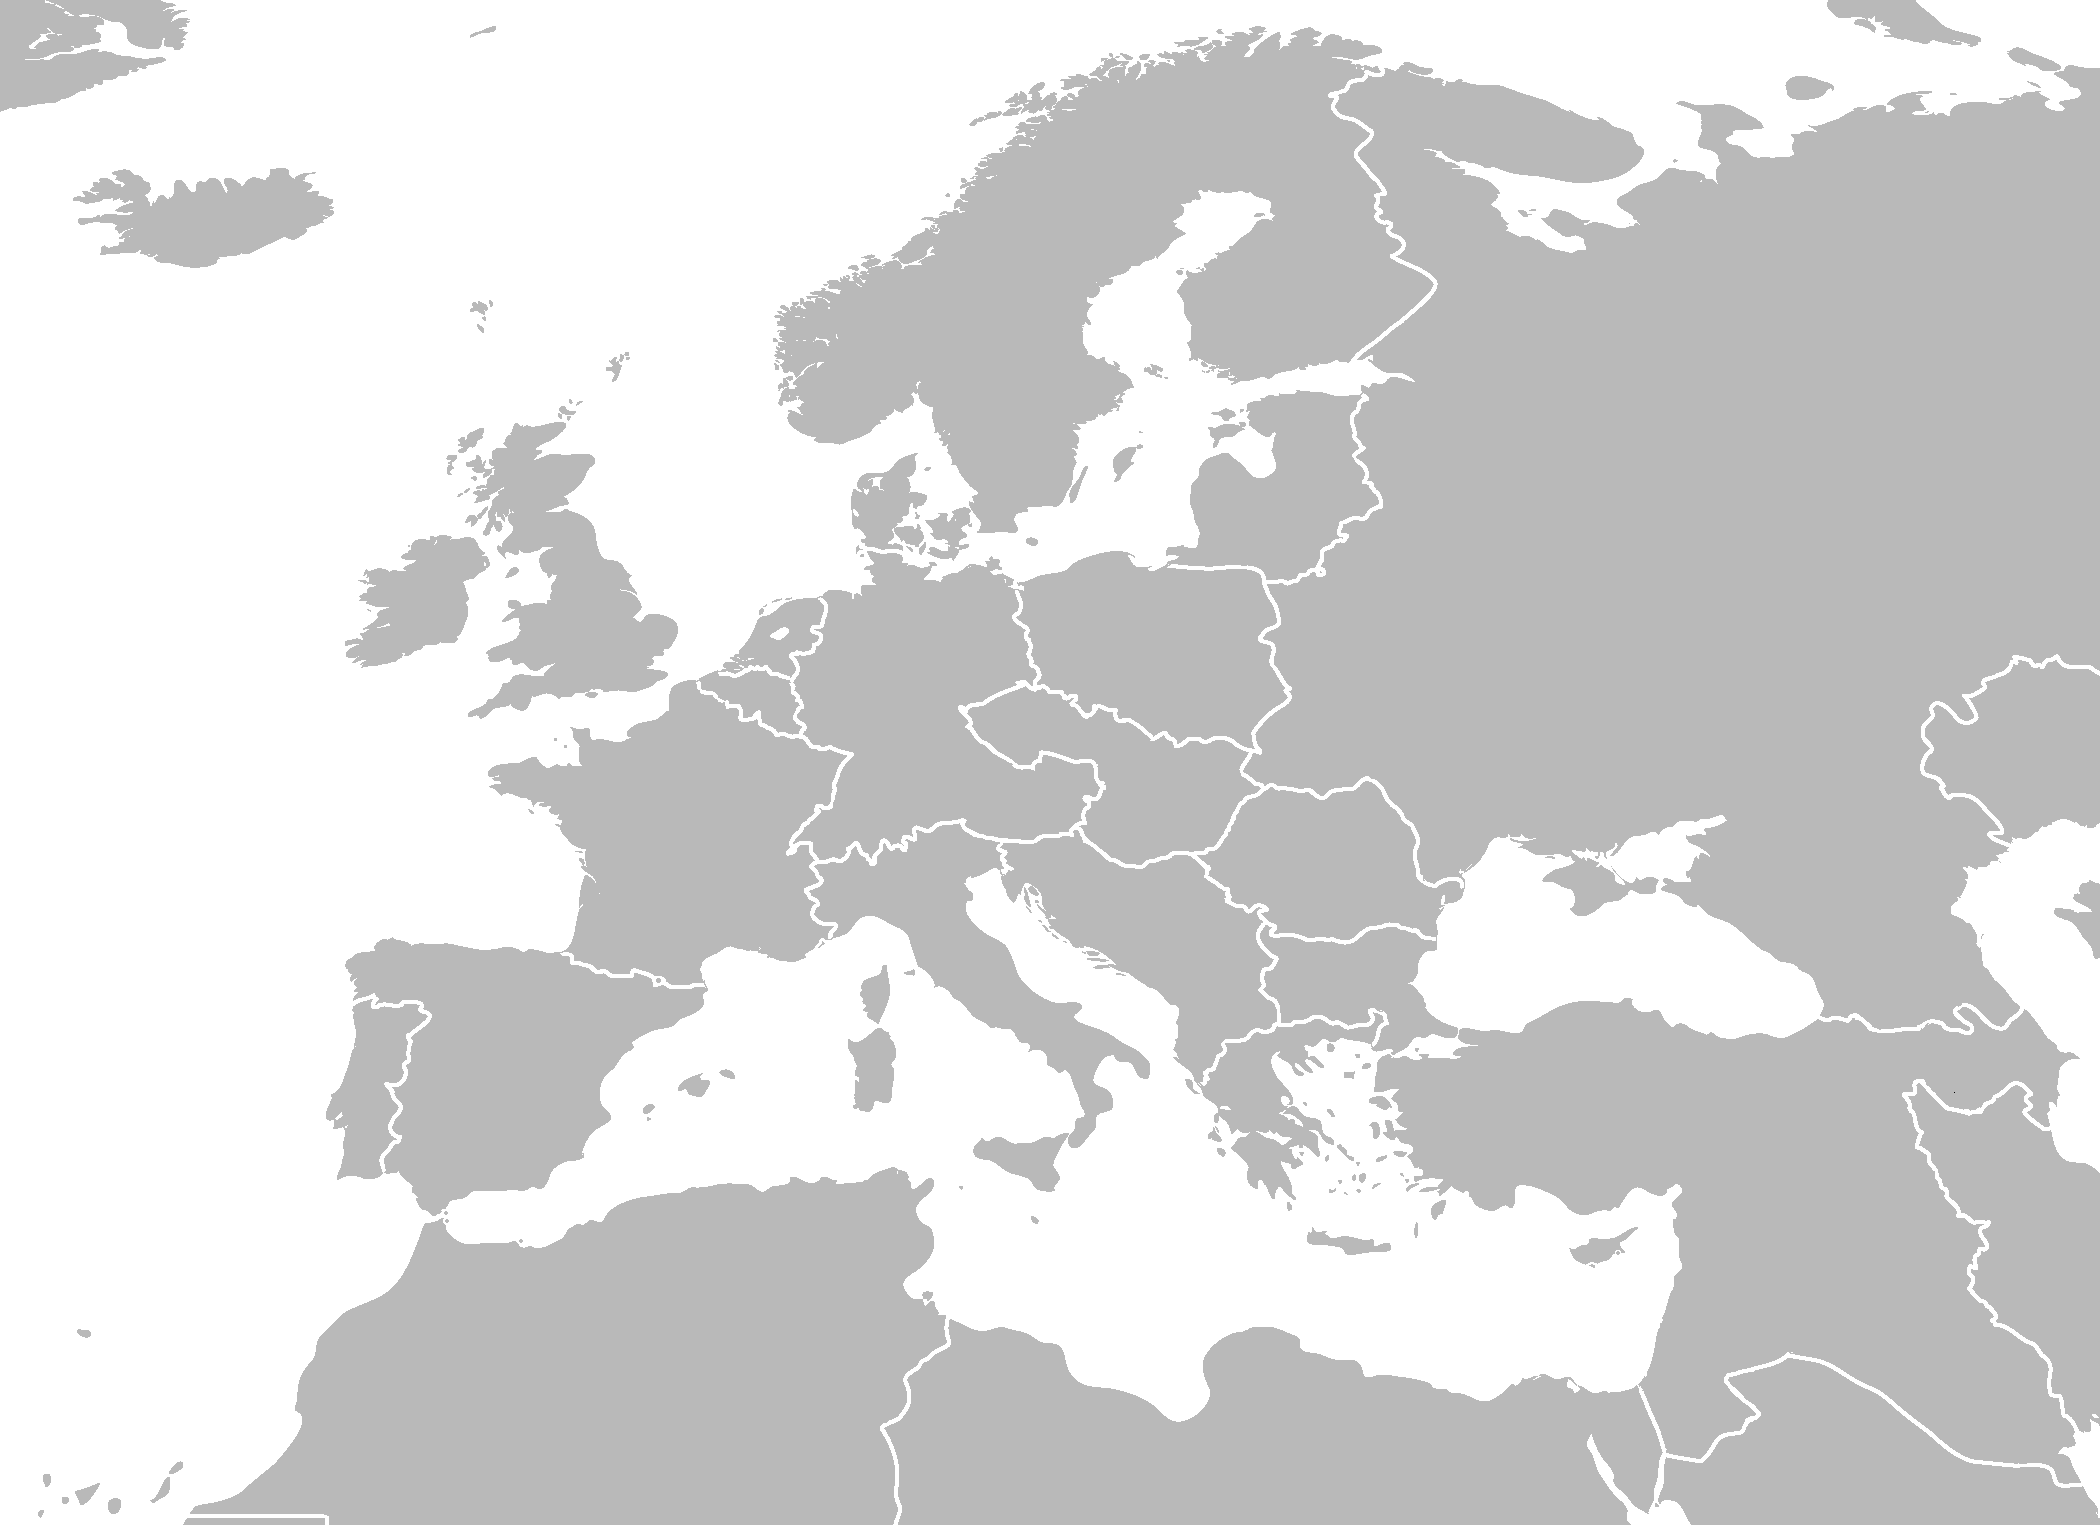 World war 2 map blank blank map of europe during gumiabroncs Gallery